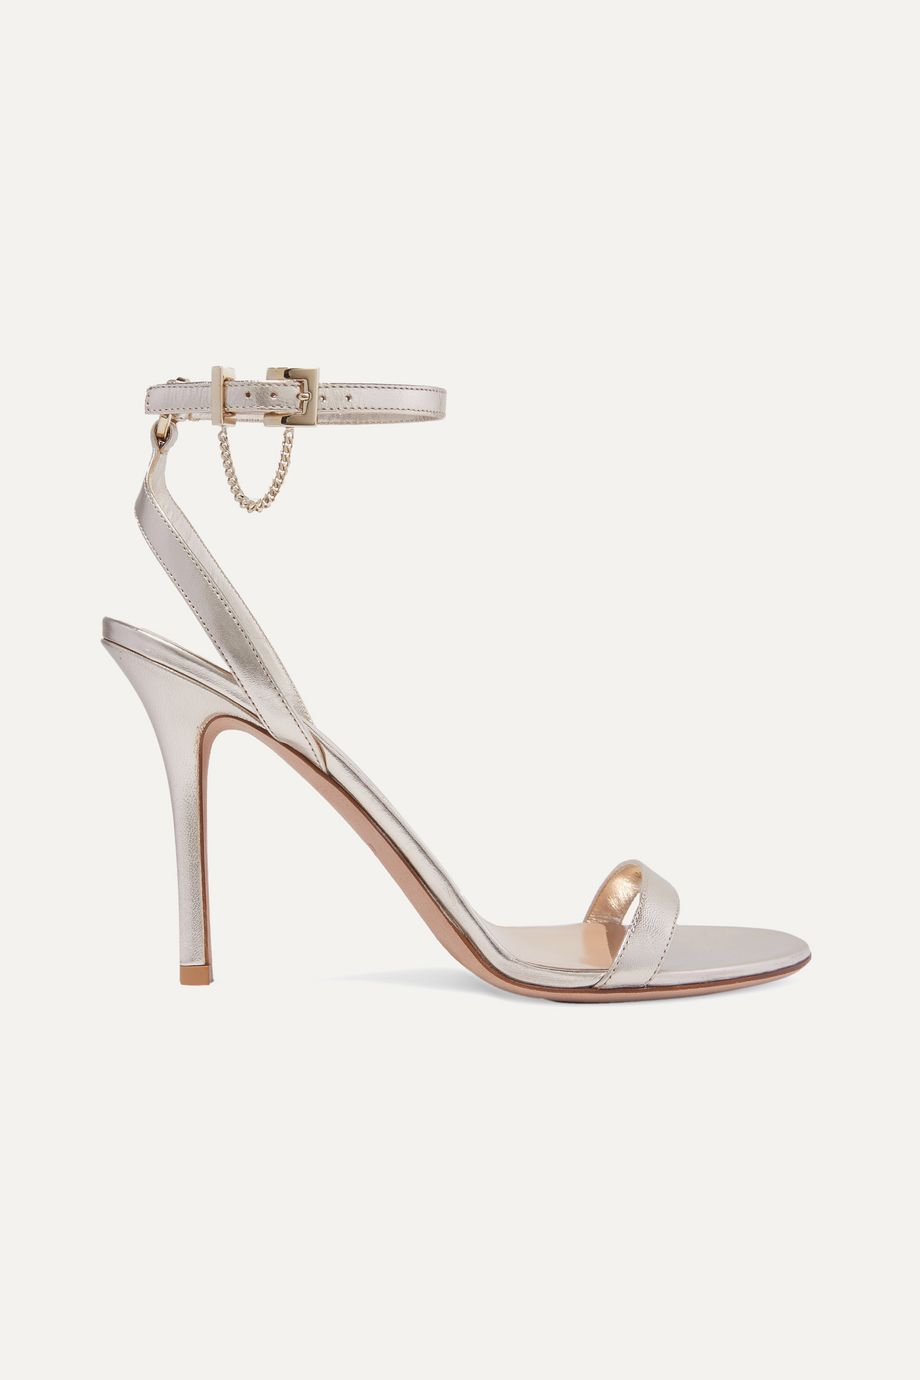 Valentino Valentino Garavani Tiny Chain 100 metallic leather sandals